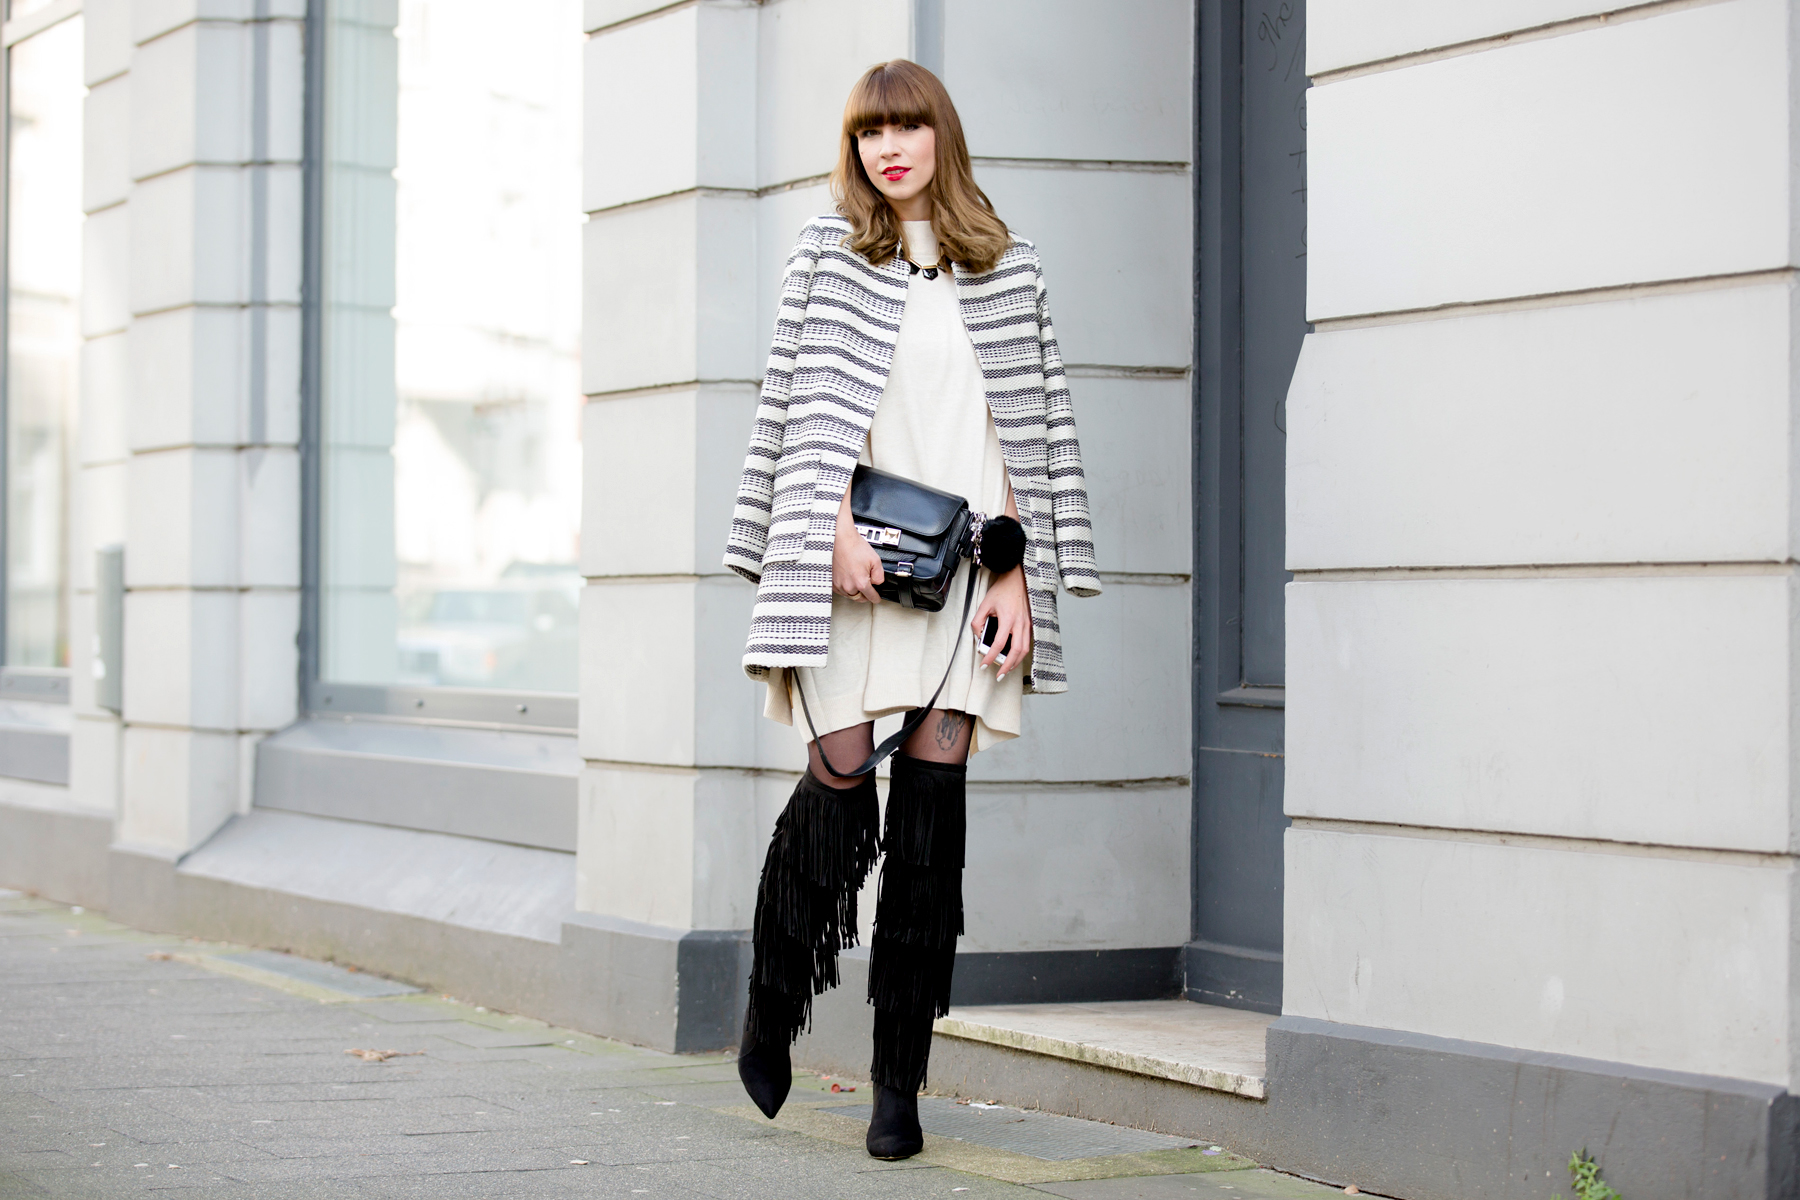 fringed overknee boots sacha lampshading stripes francaise cute parisienne red lips ysl proenza schouler luxury fashion blogger dusseldorf berlin germany 4